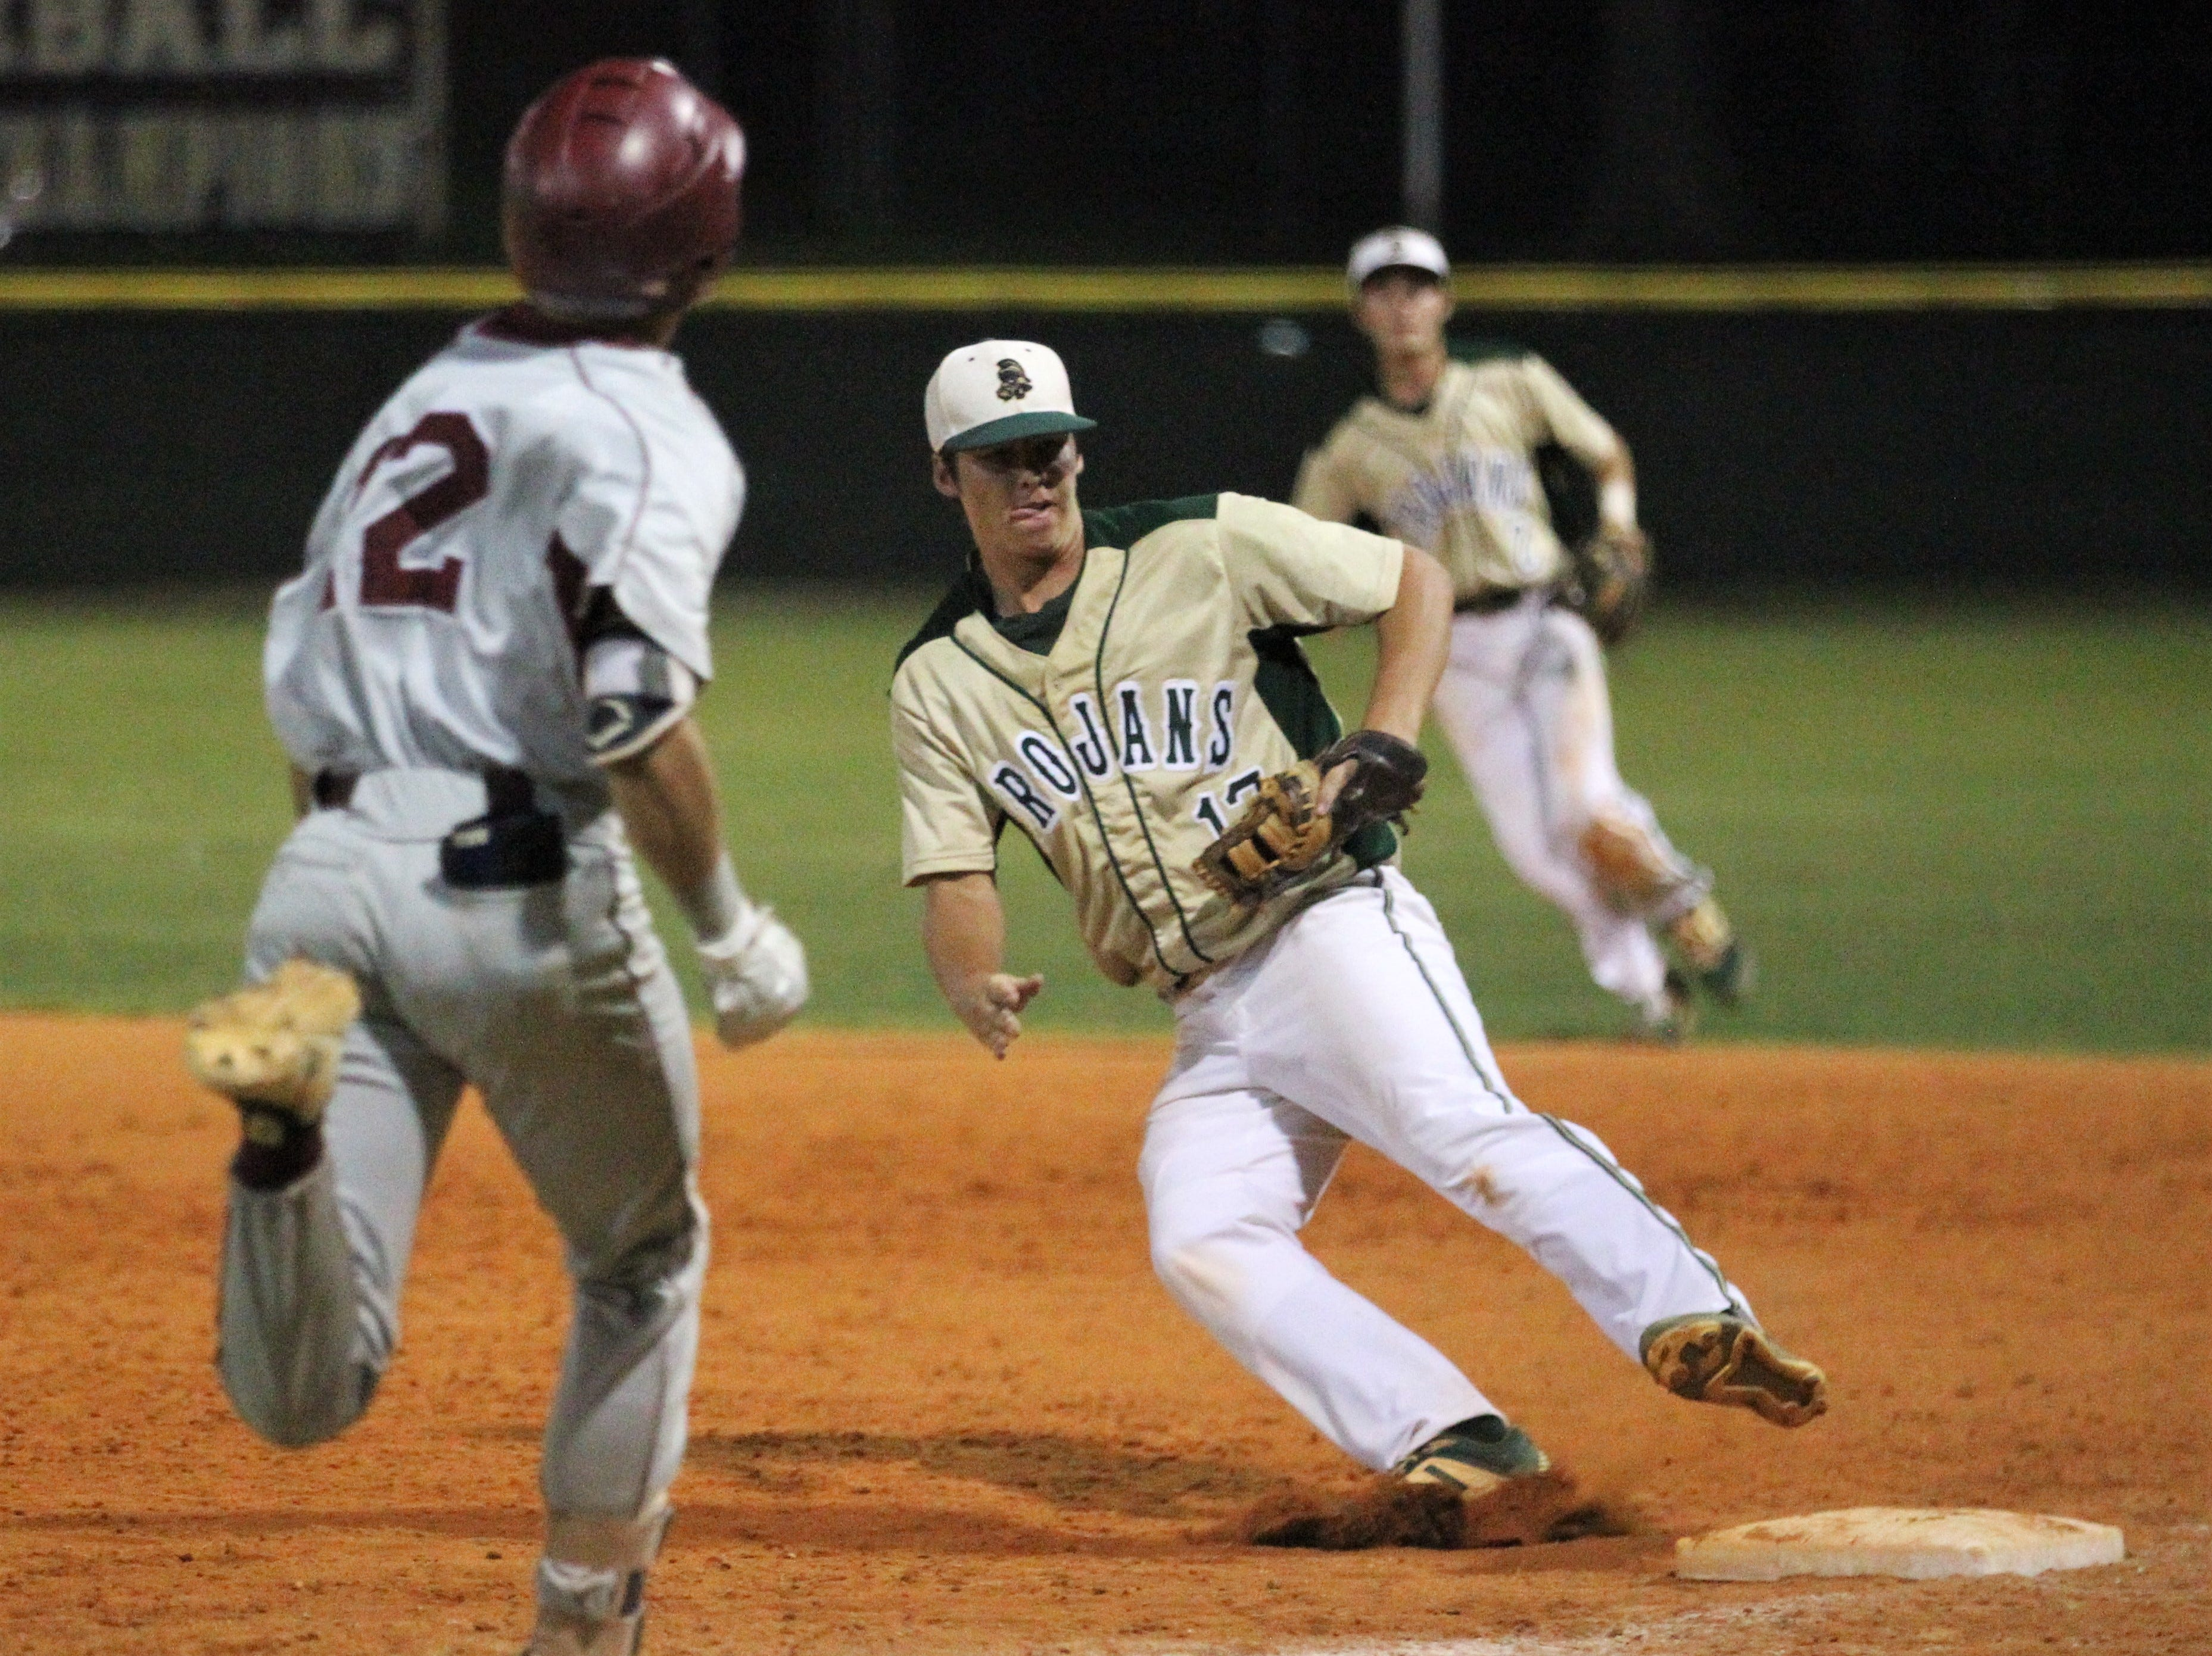 Lincoln first baseman Tommy Mills steps on first for an out as Lincoln baseball beat Chiles 5-4  in 10 innings during a District 2-8A championship game on Thursday, May 9, 2019.